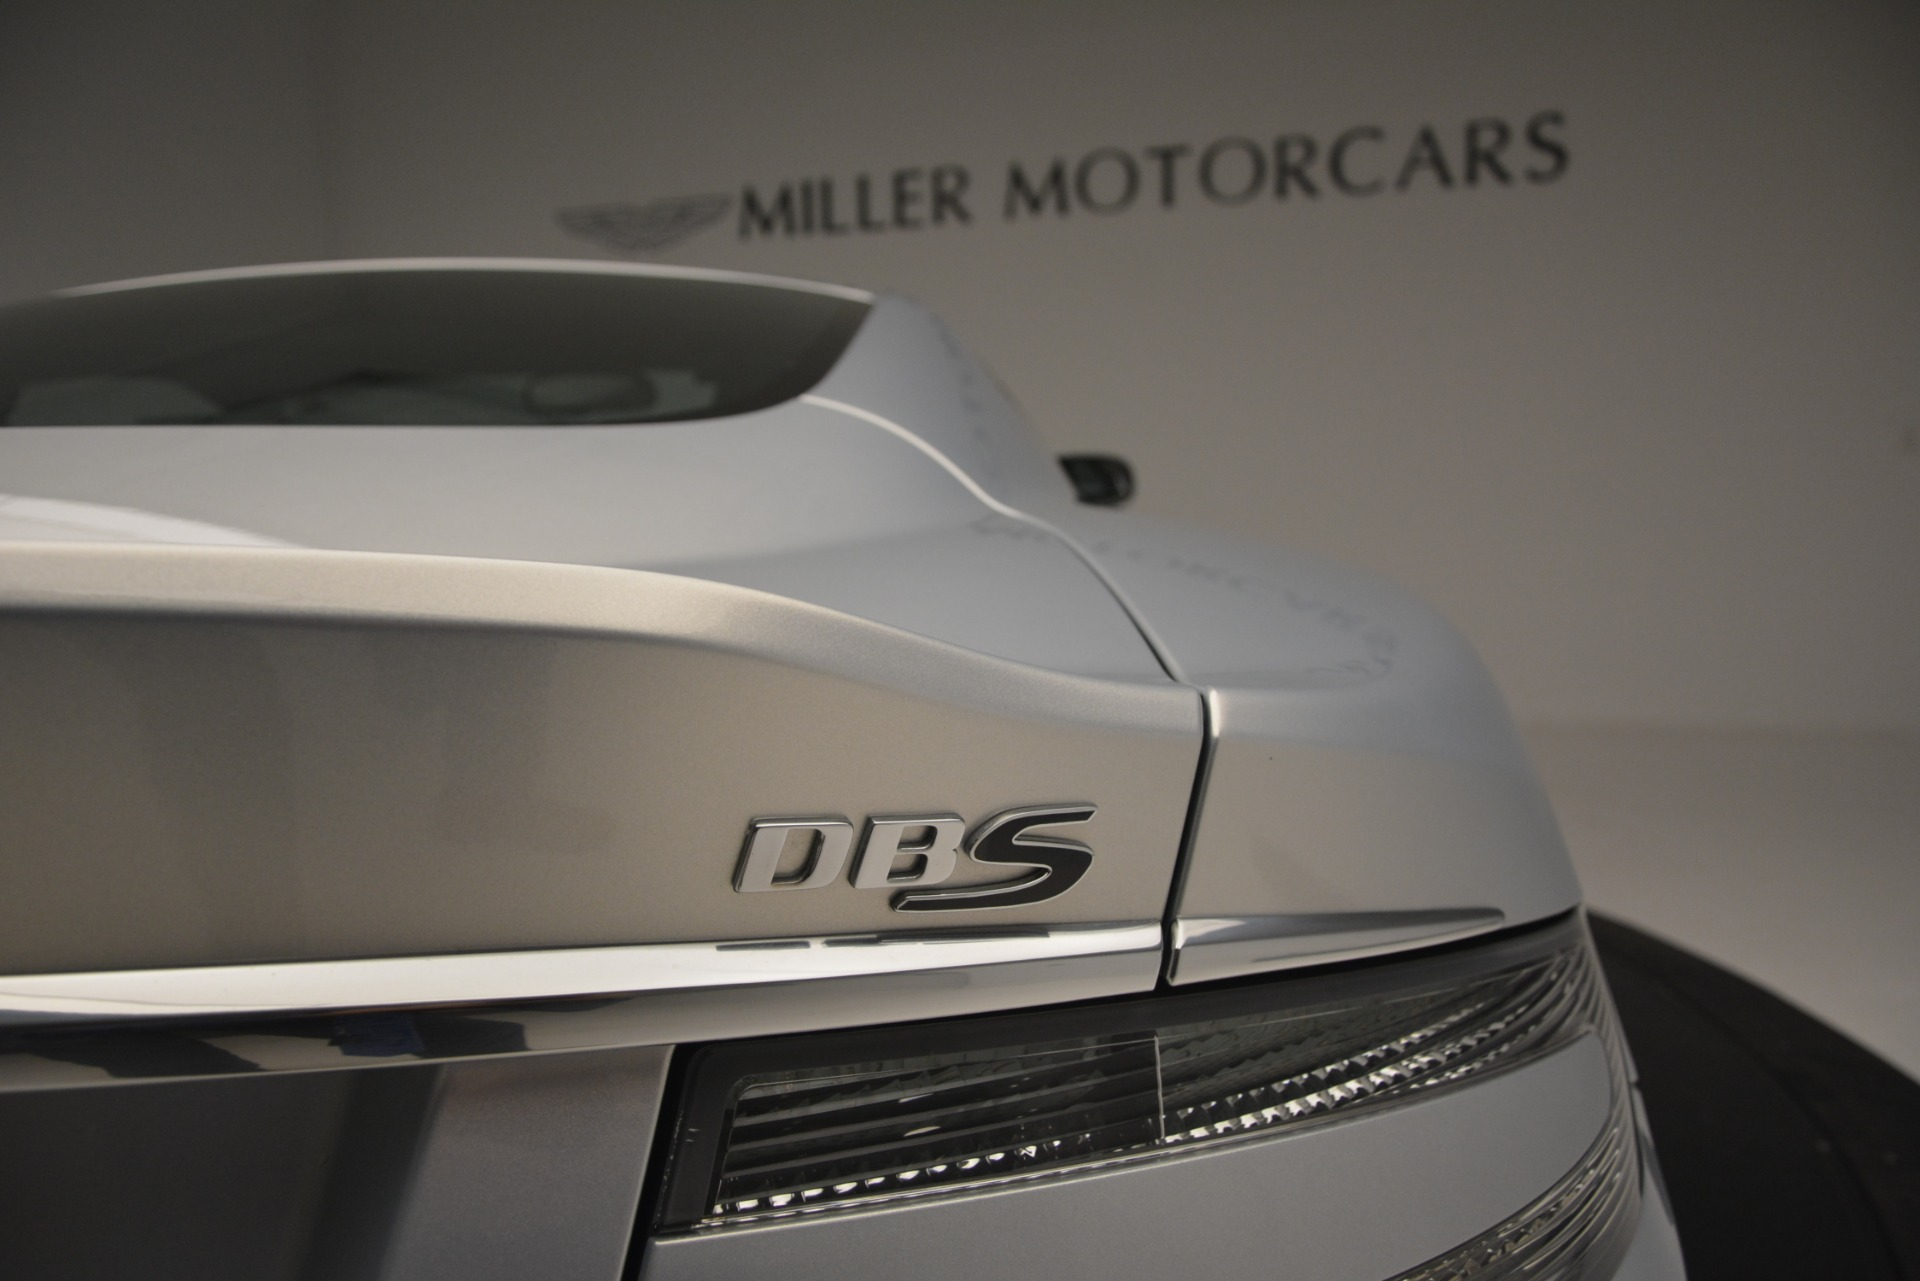 Used 2009 Aston Martin DBS Coupe For Sale In Westport, CT 3033_p16